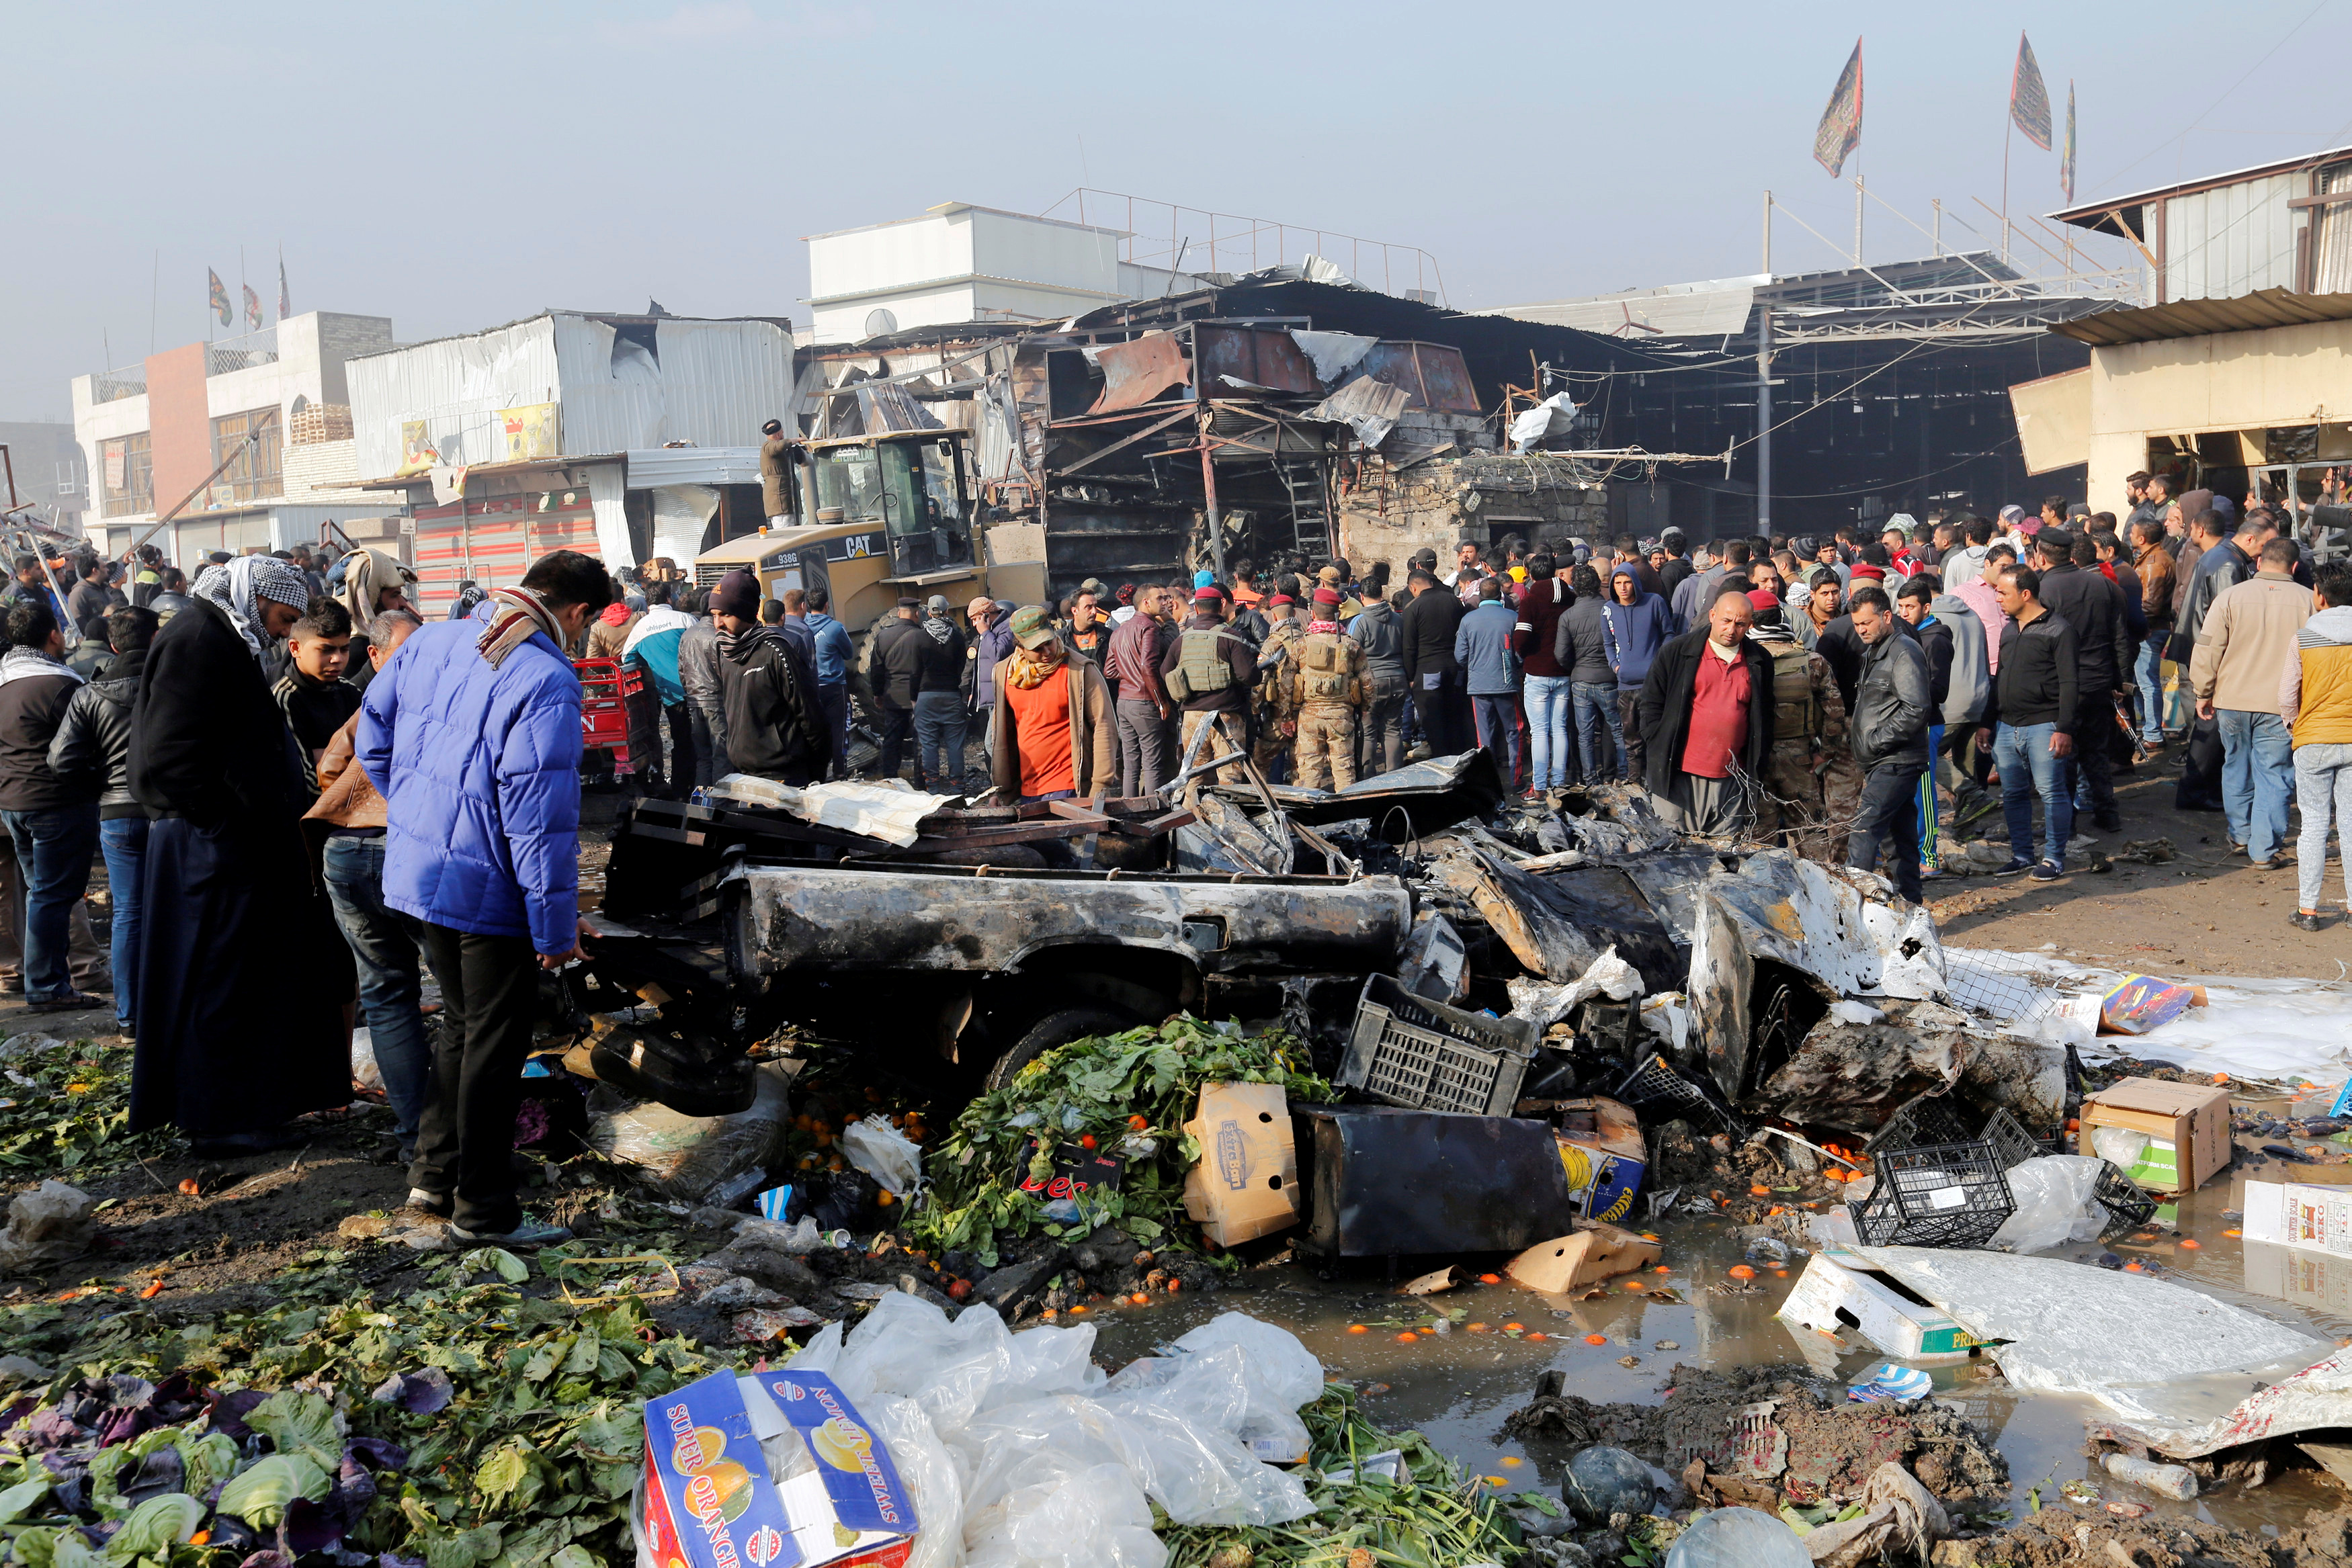 People gather at the site of a car bomb attack at a vegetable market in eastern Baghdad, Iraq Jan. 8, 2017.